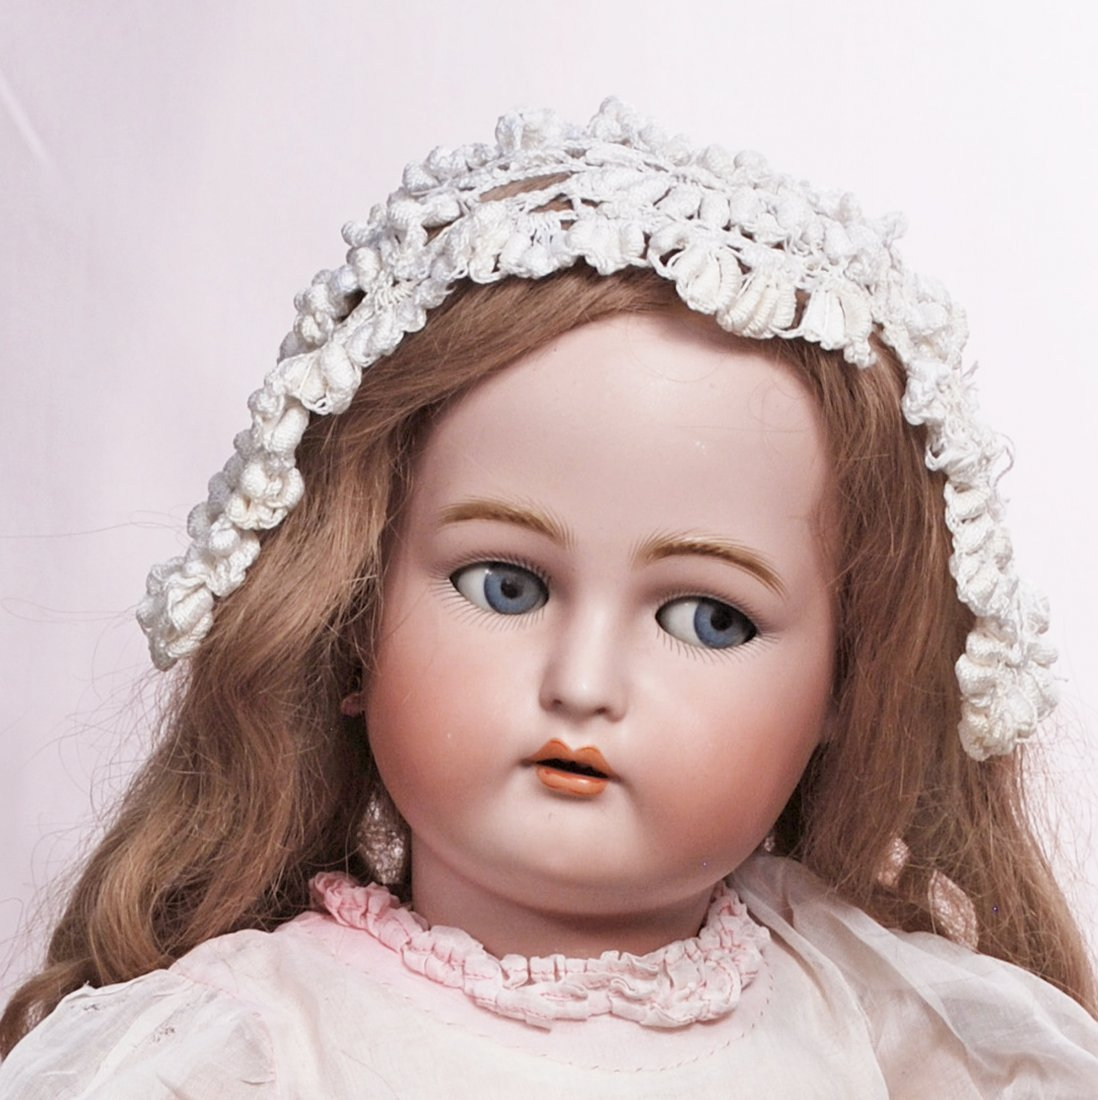 98. FLIRTY-EYED GERMAN BISQUE DOLL BY KAMMER & - 3